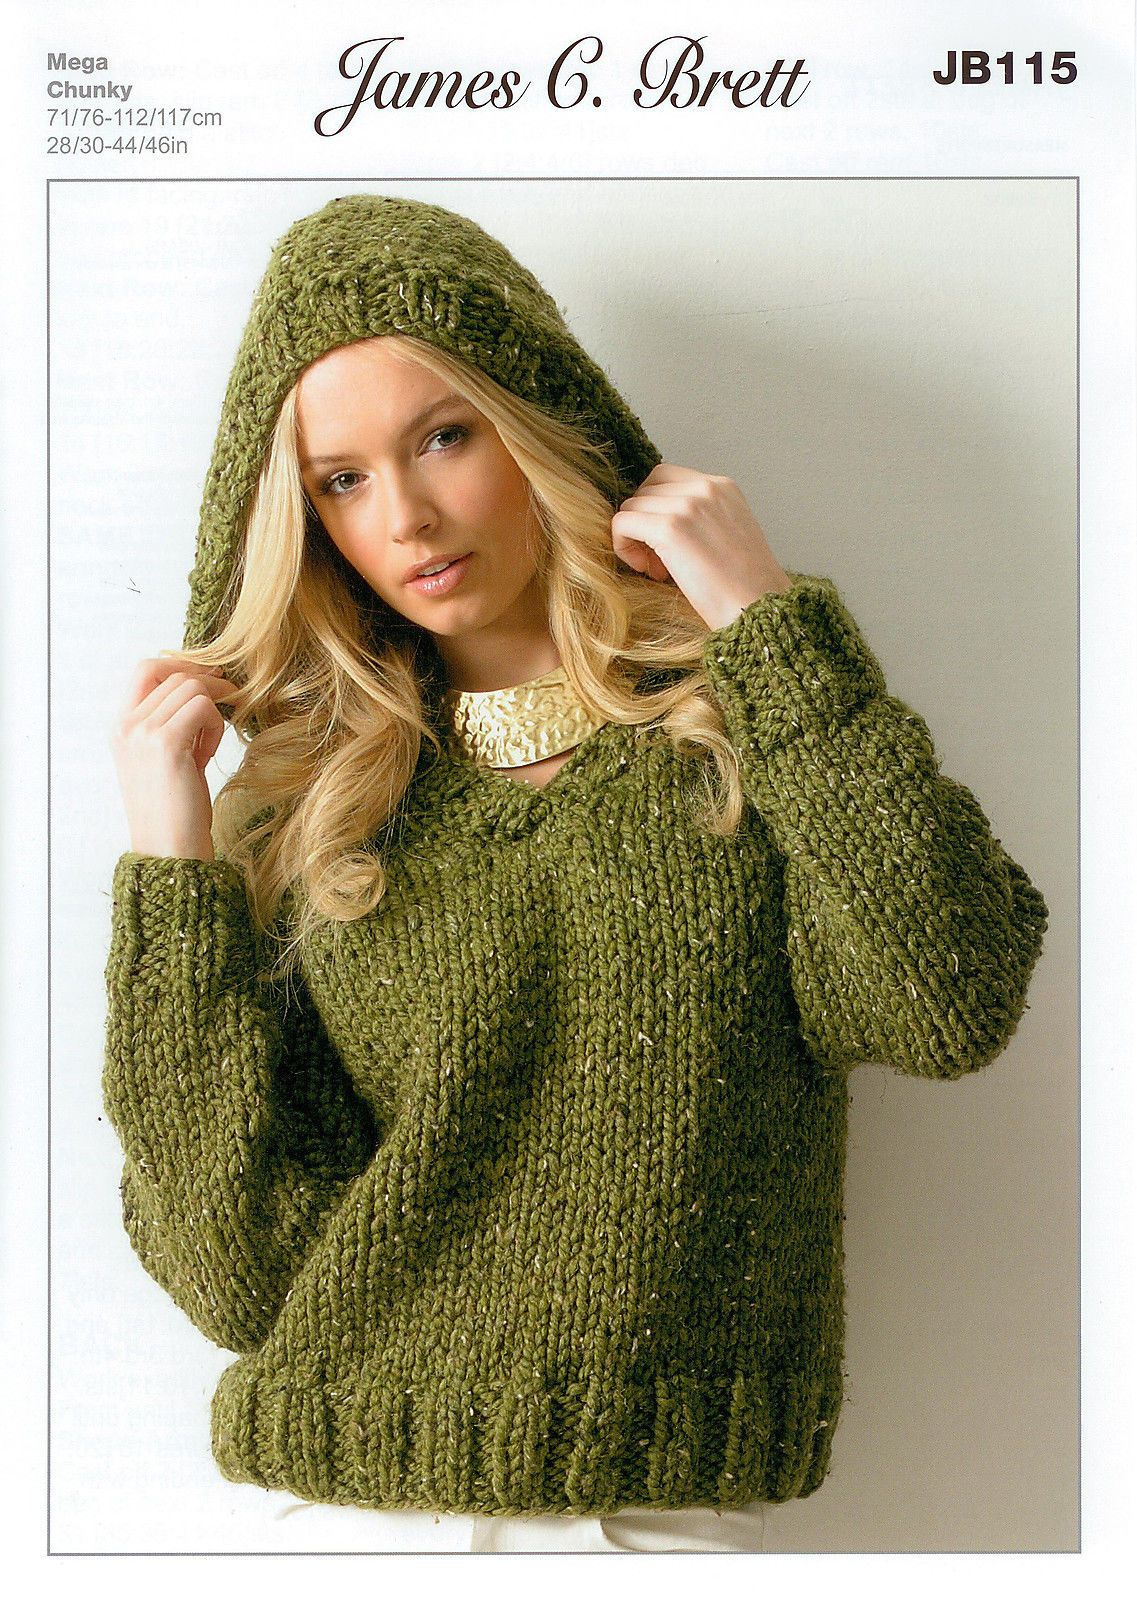 Ladies Hooded Sweater JB115 Knitting Pattern James C Brett Rustic ...